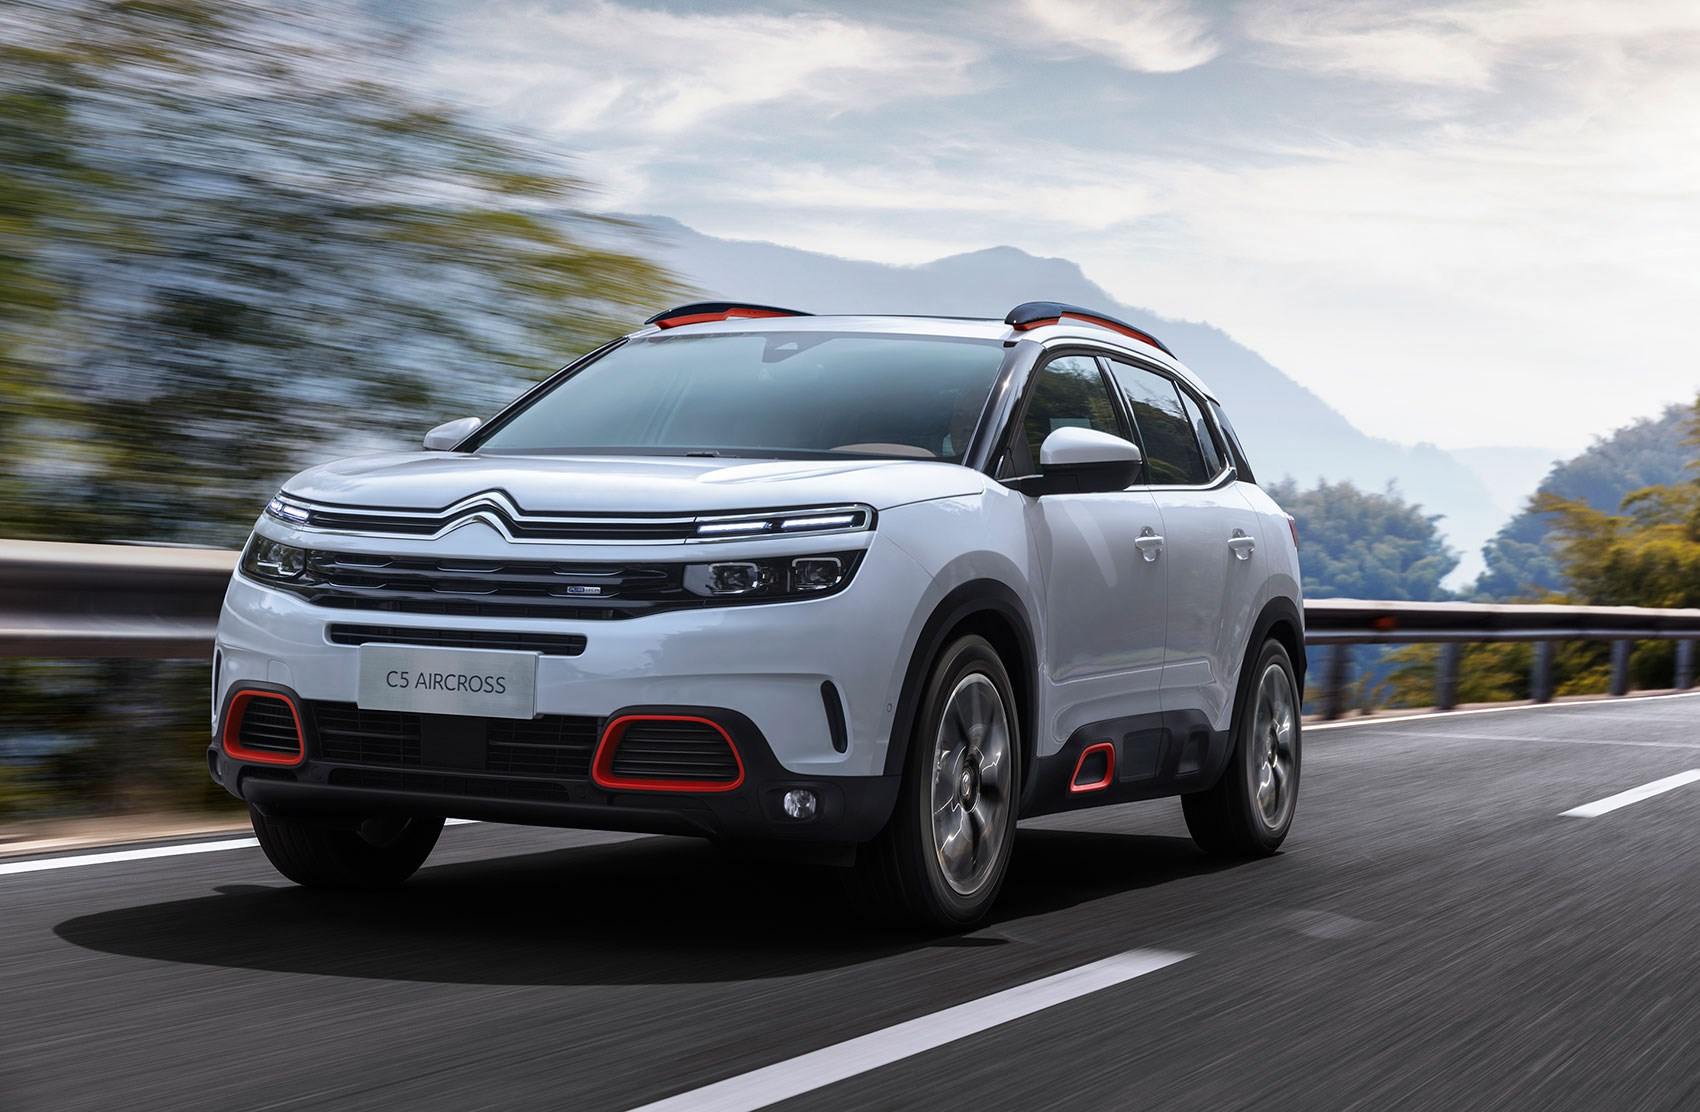 New Citroen C5 Aircross for £268 per Month